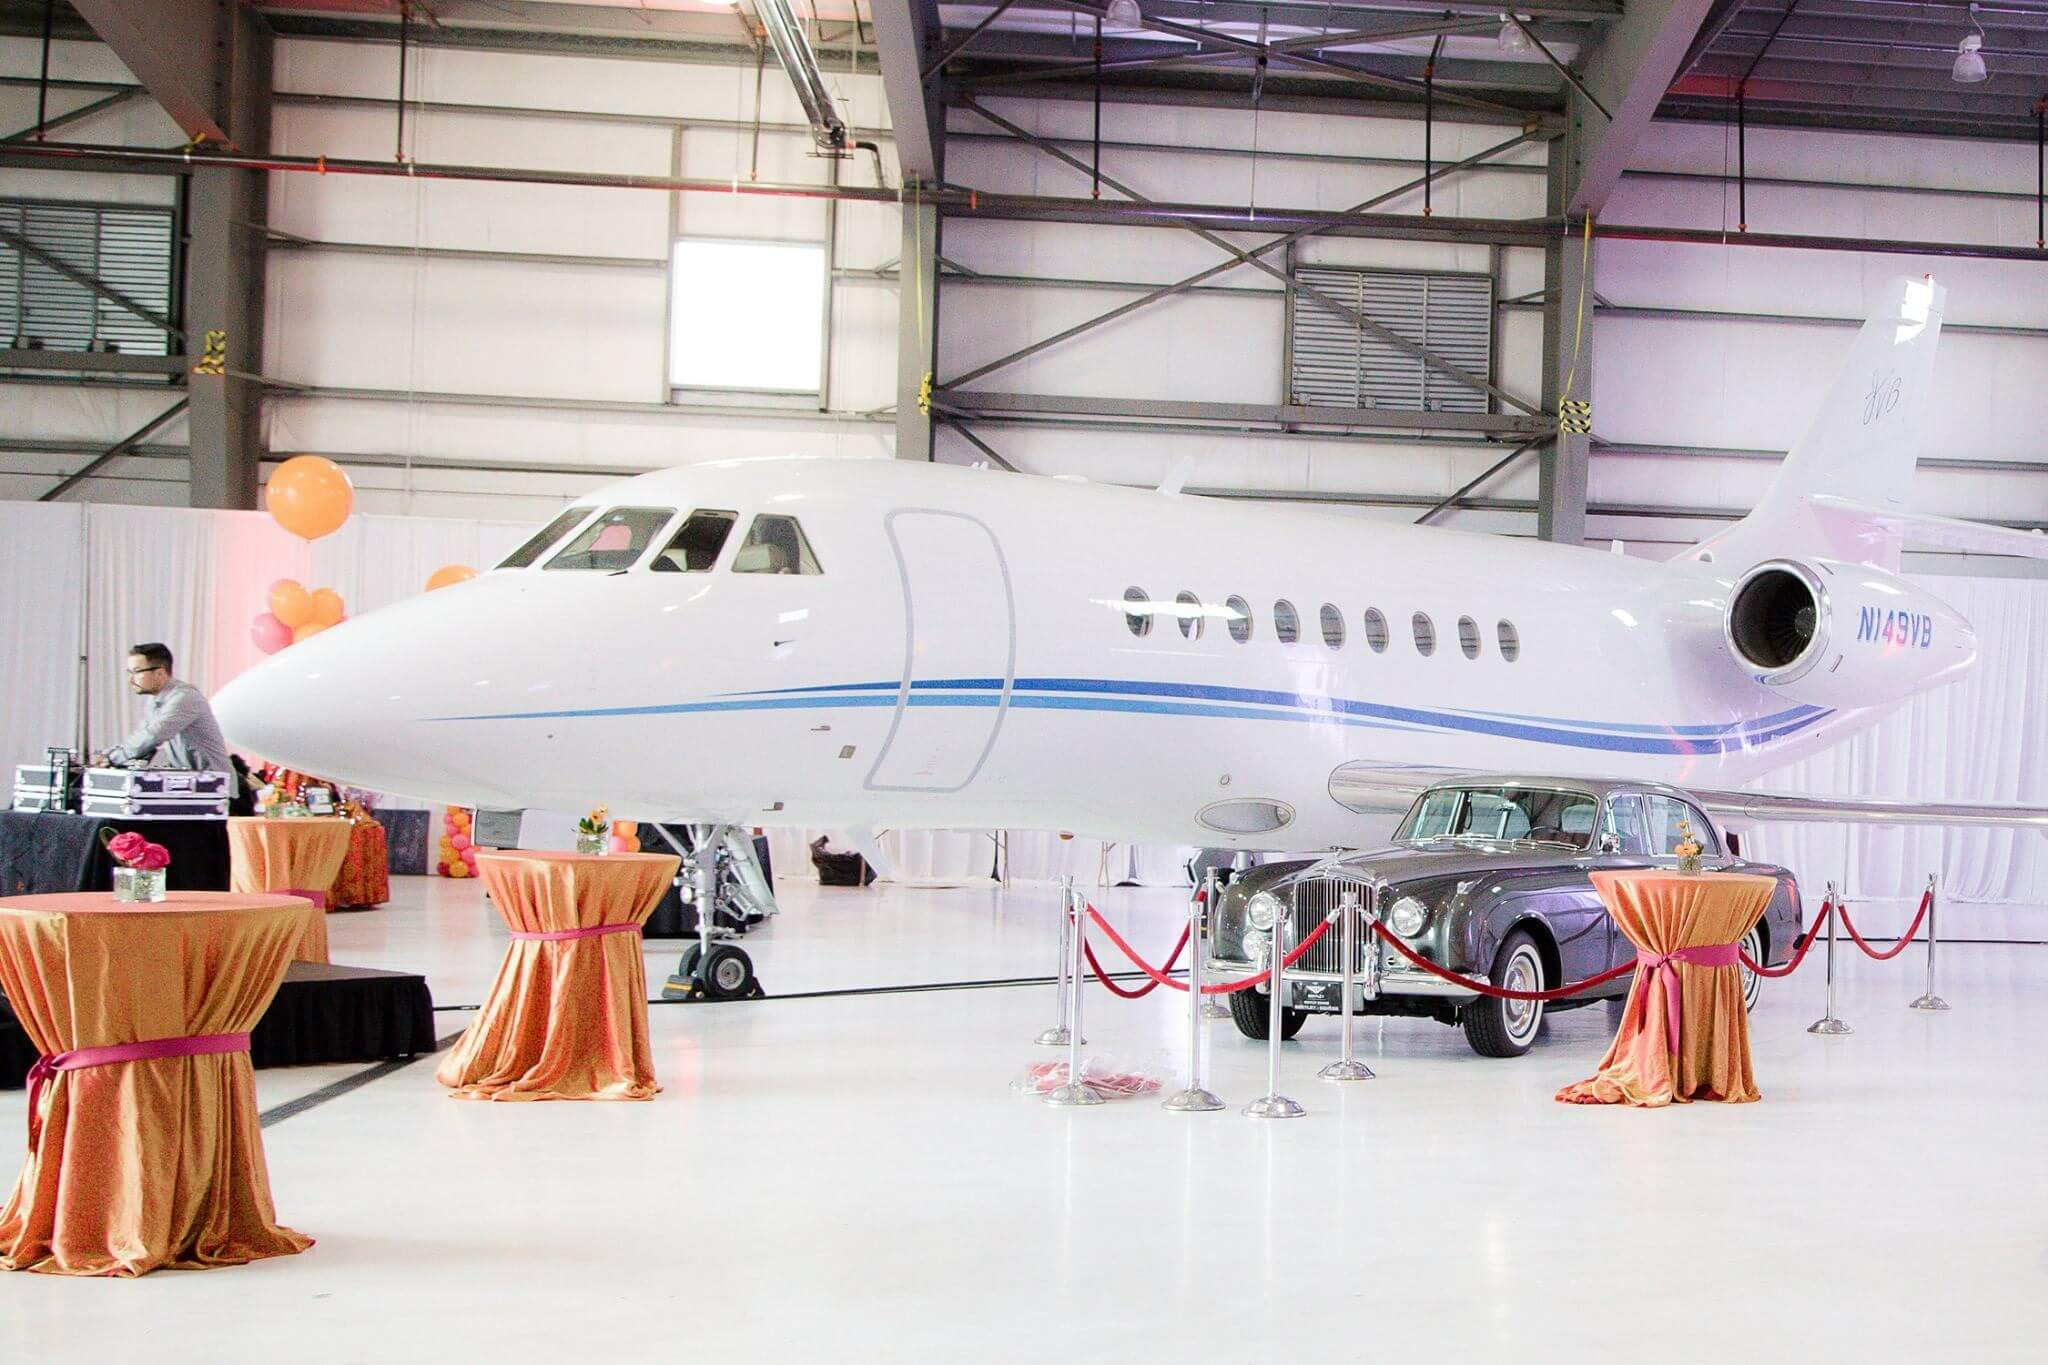 Private Event in Arizona Airplane Hangar